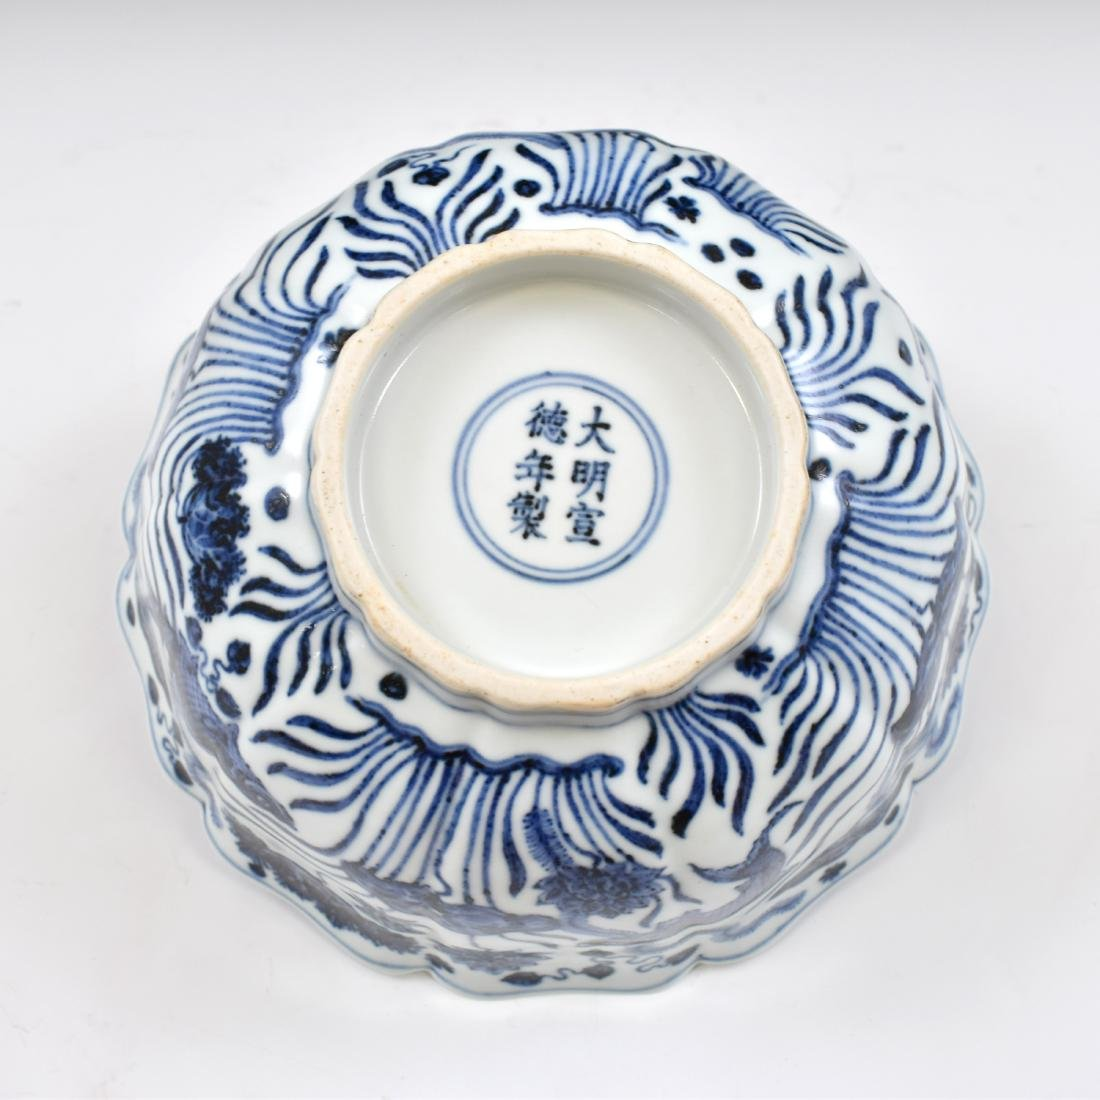 MING BLUE & WHITE CARP MOTIF BOWL ON STAND - 9